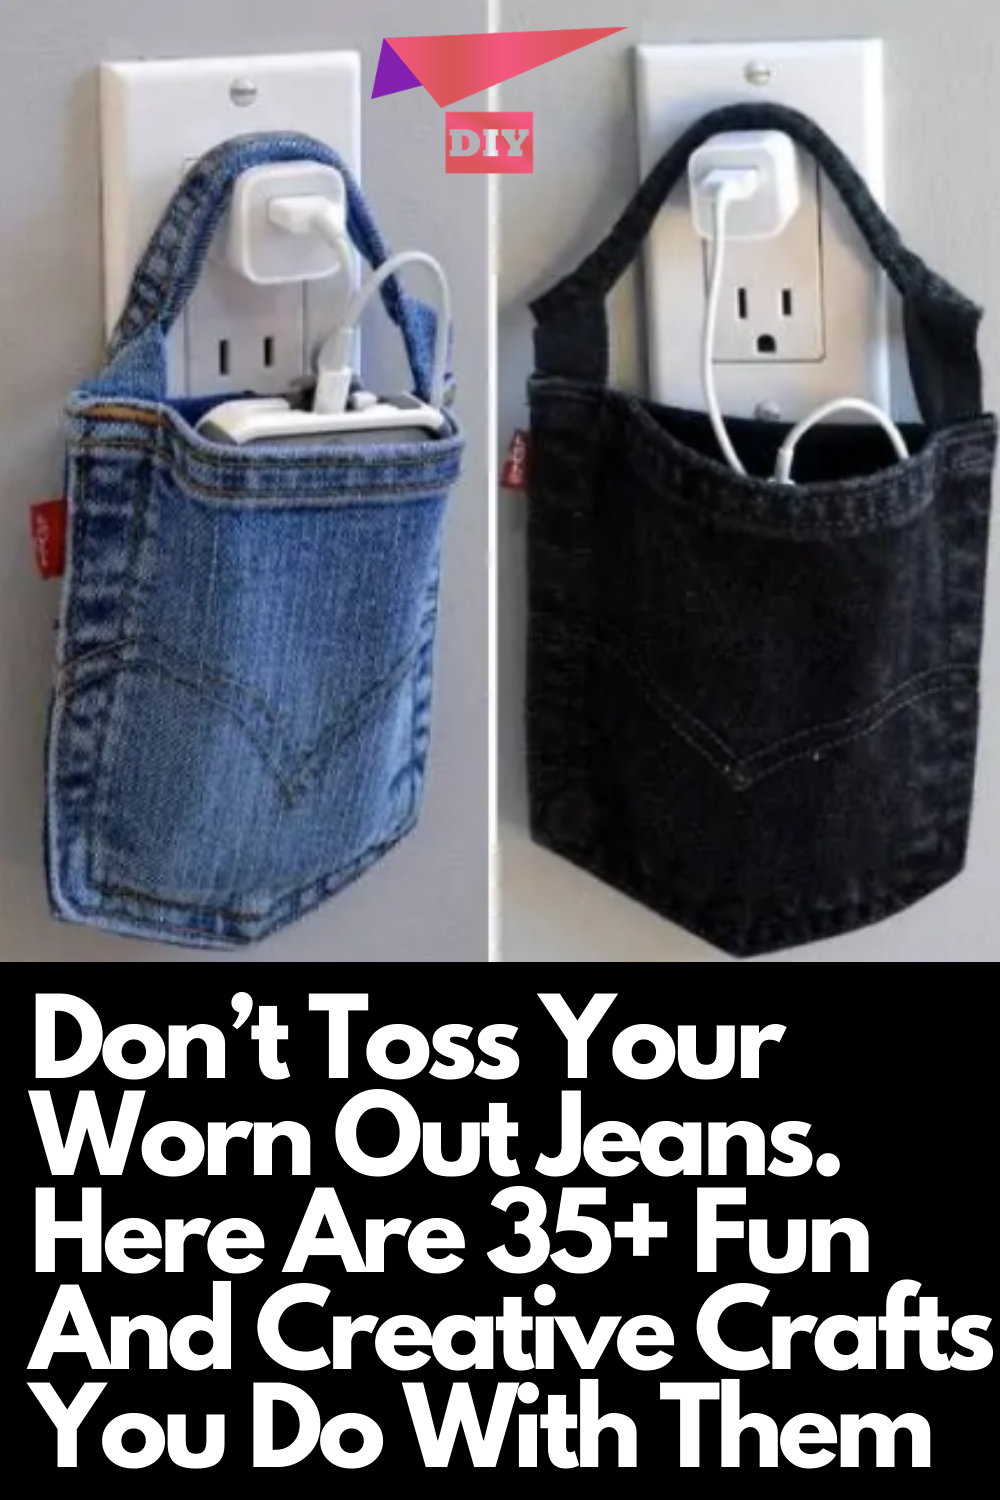 Photo of Don't Toss Your Worn Out Jeans. Here Are 35+ Fun And Creative Crafts You Do With Them